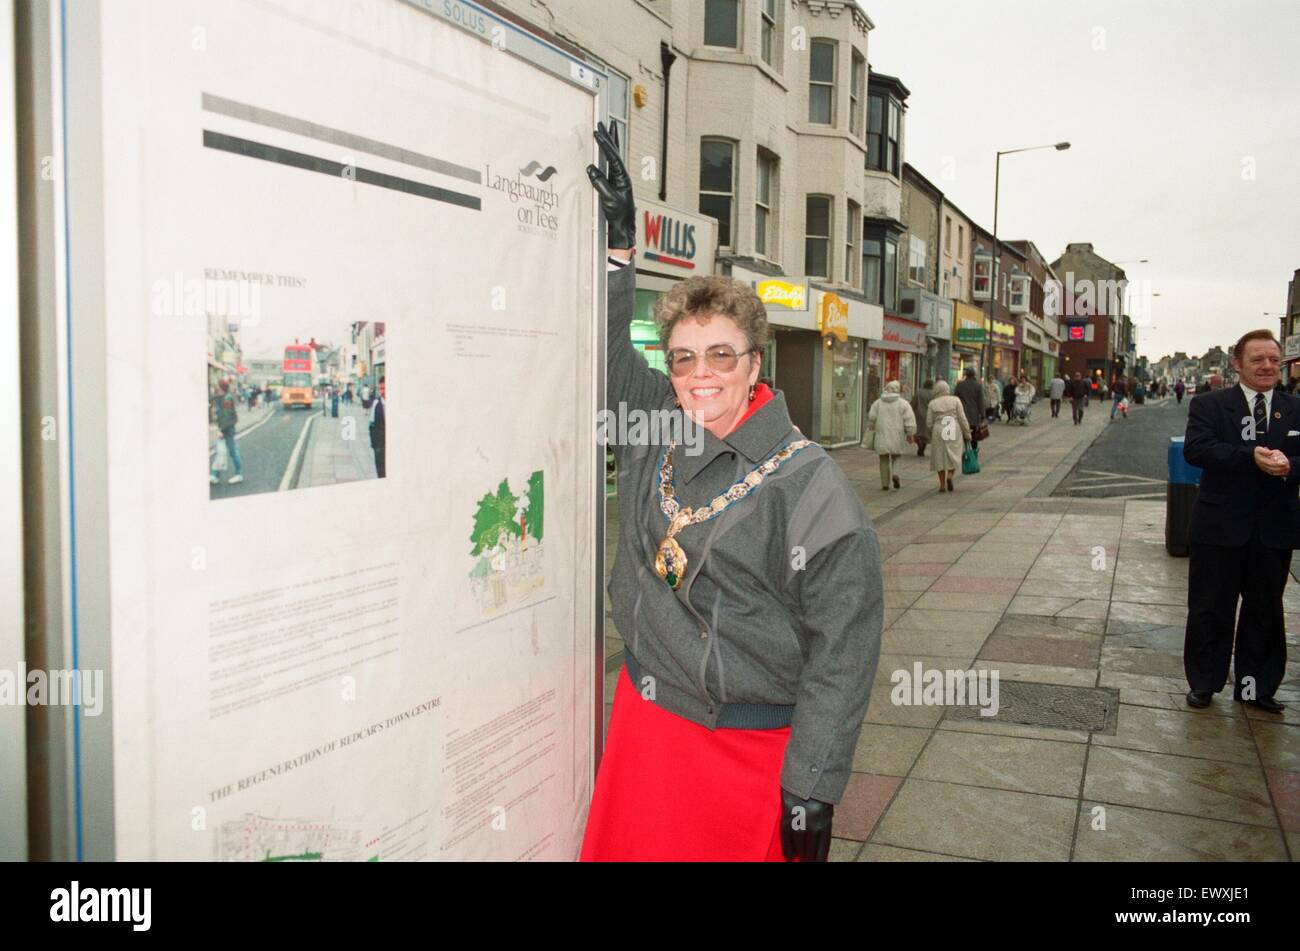 Mayor of Langbaurgh Brenda Forster unveils a poster in their fight against anti - pedestrianization campaigners - Stock Image